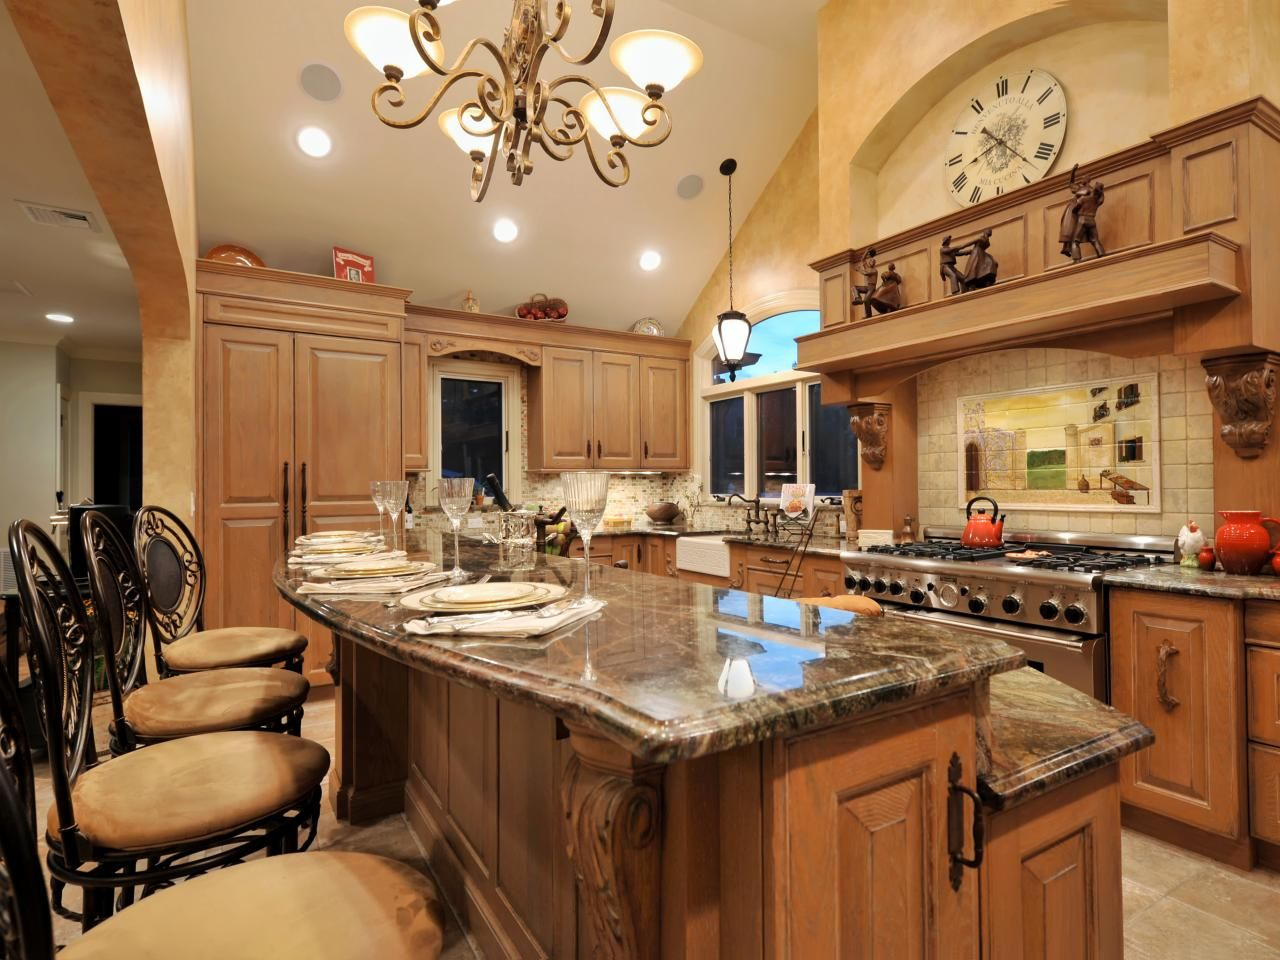 A twotiered kitchen island with granite countertops provides bar